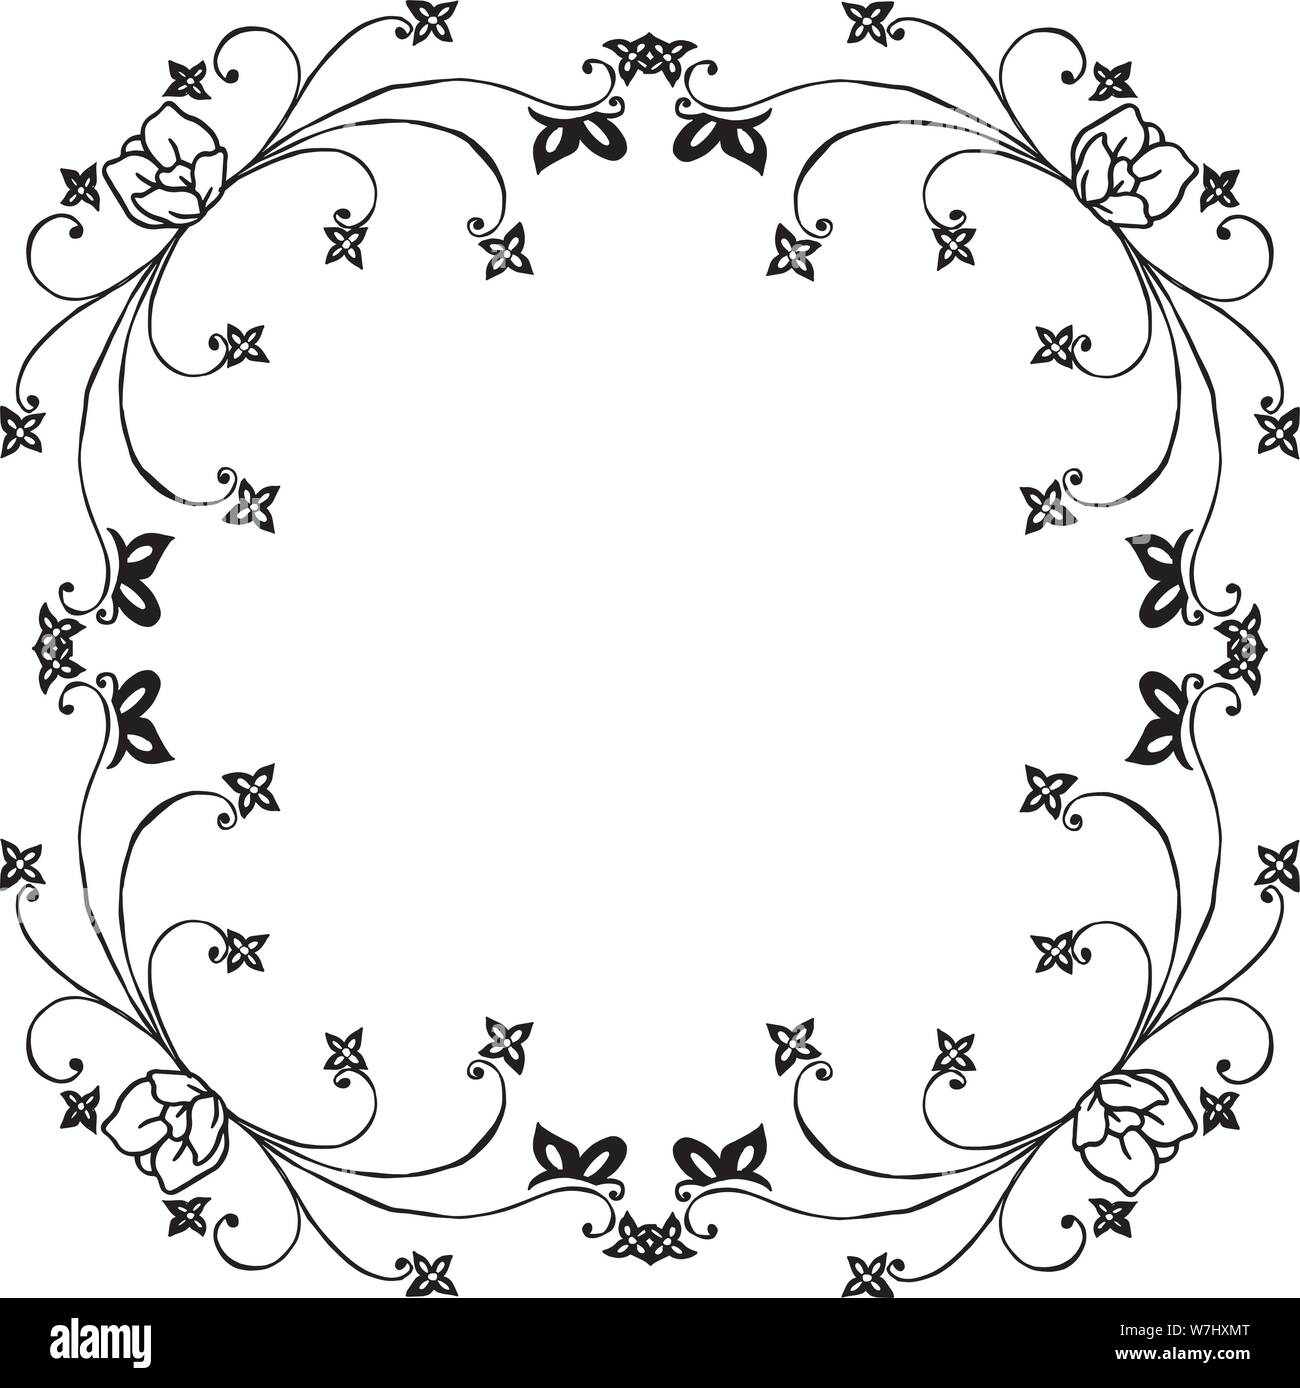 https www alamy com design element for invitation card greeting card with flower frame black white isolated on white background vector illustration image262852264 html